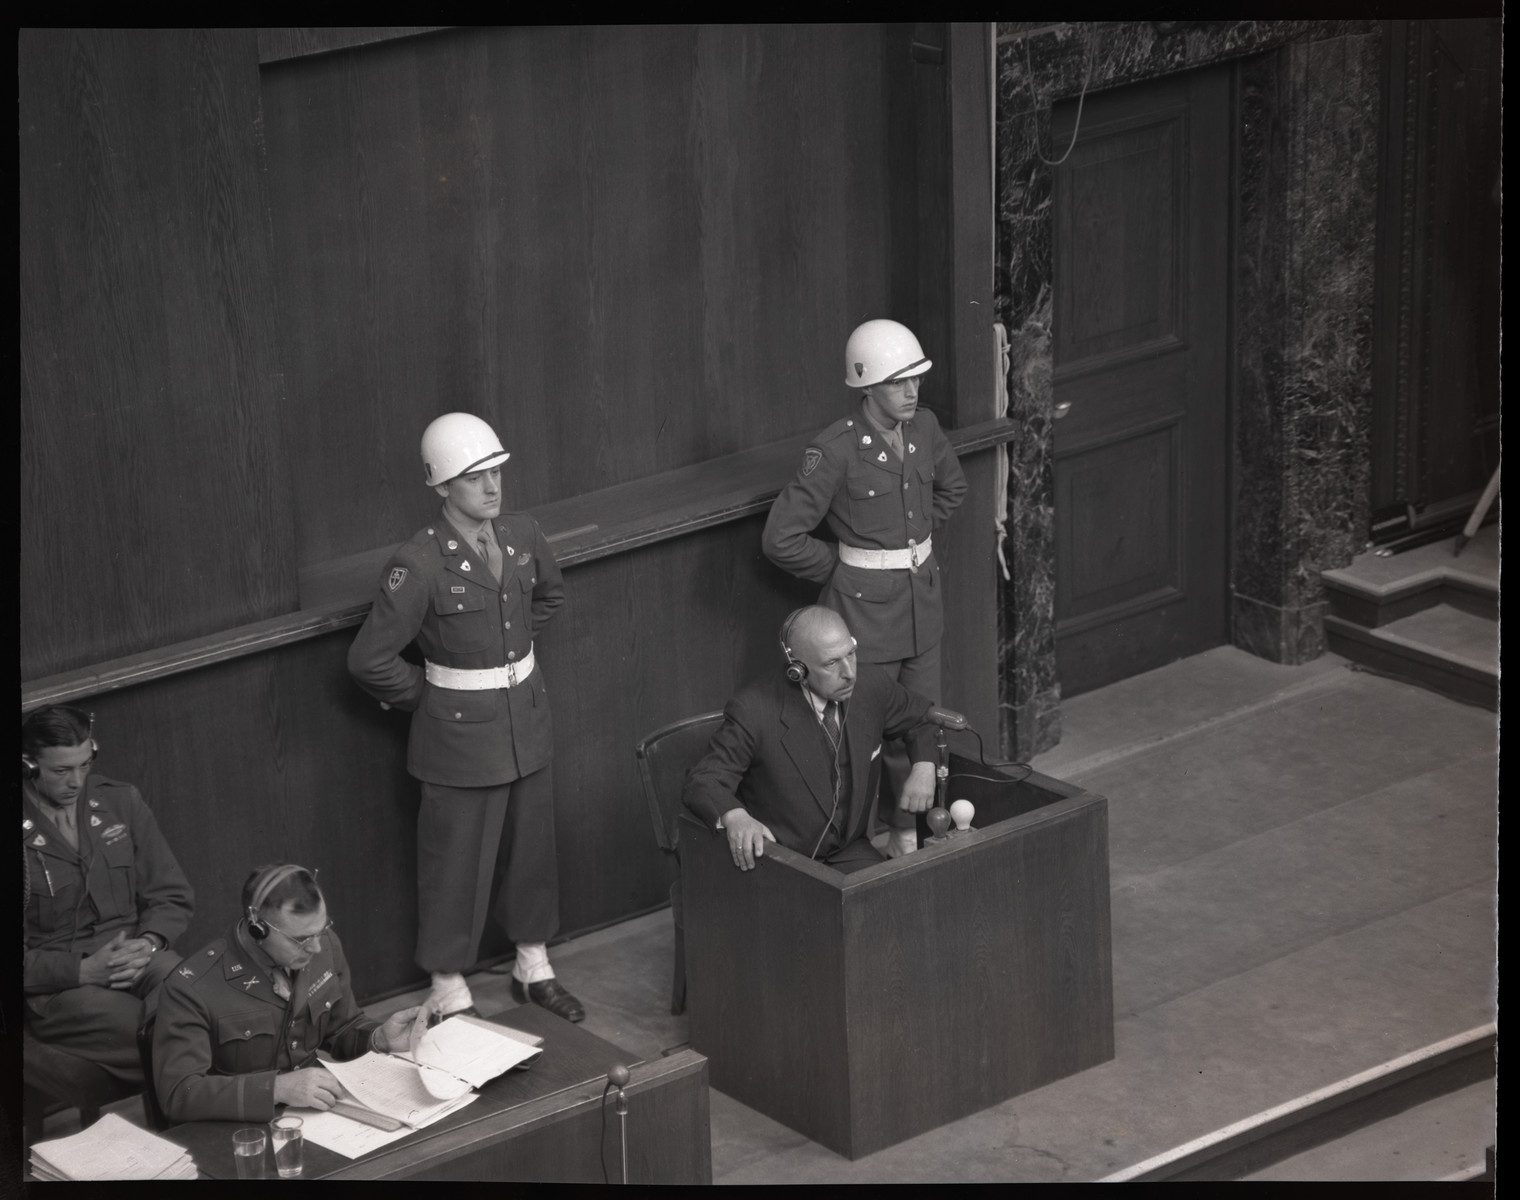 A defendant or witness gives testimony during the International Military Tribunal in Nuremberg.